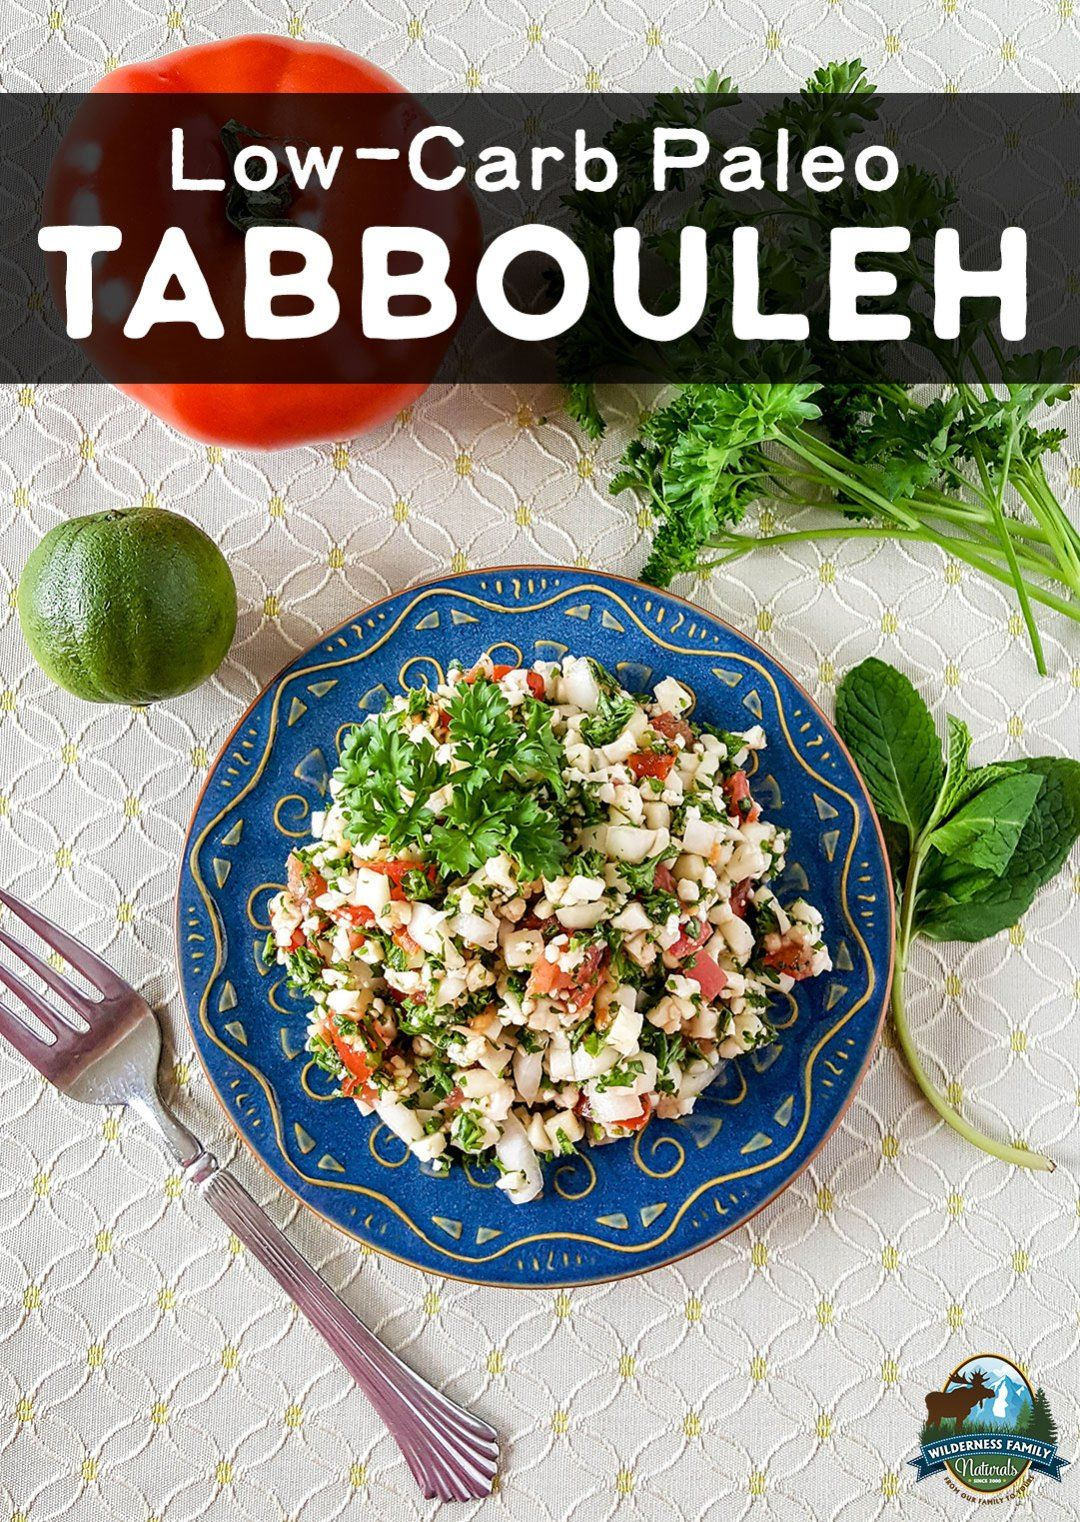 Low-Carb Paleo Tabbouleh | In this twist on traditional Tabbouleh, riced cauliflower stands in for bulgur wheat. This Low-Carb Paleo Tabbouleh is a crowd-pleasing dish for potlucks, parties, and barbecues. It's also grain-free, gluten-free, dairy-free, egg-free, and nut-free!